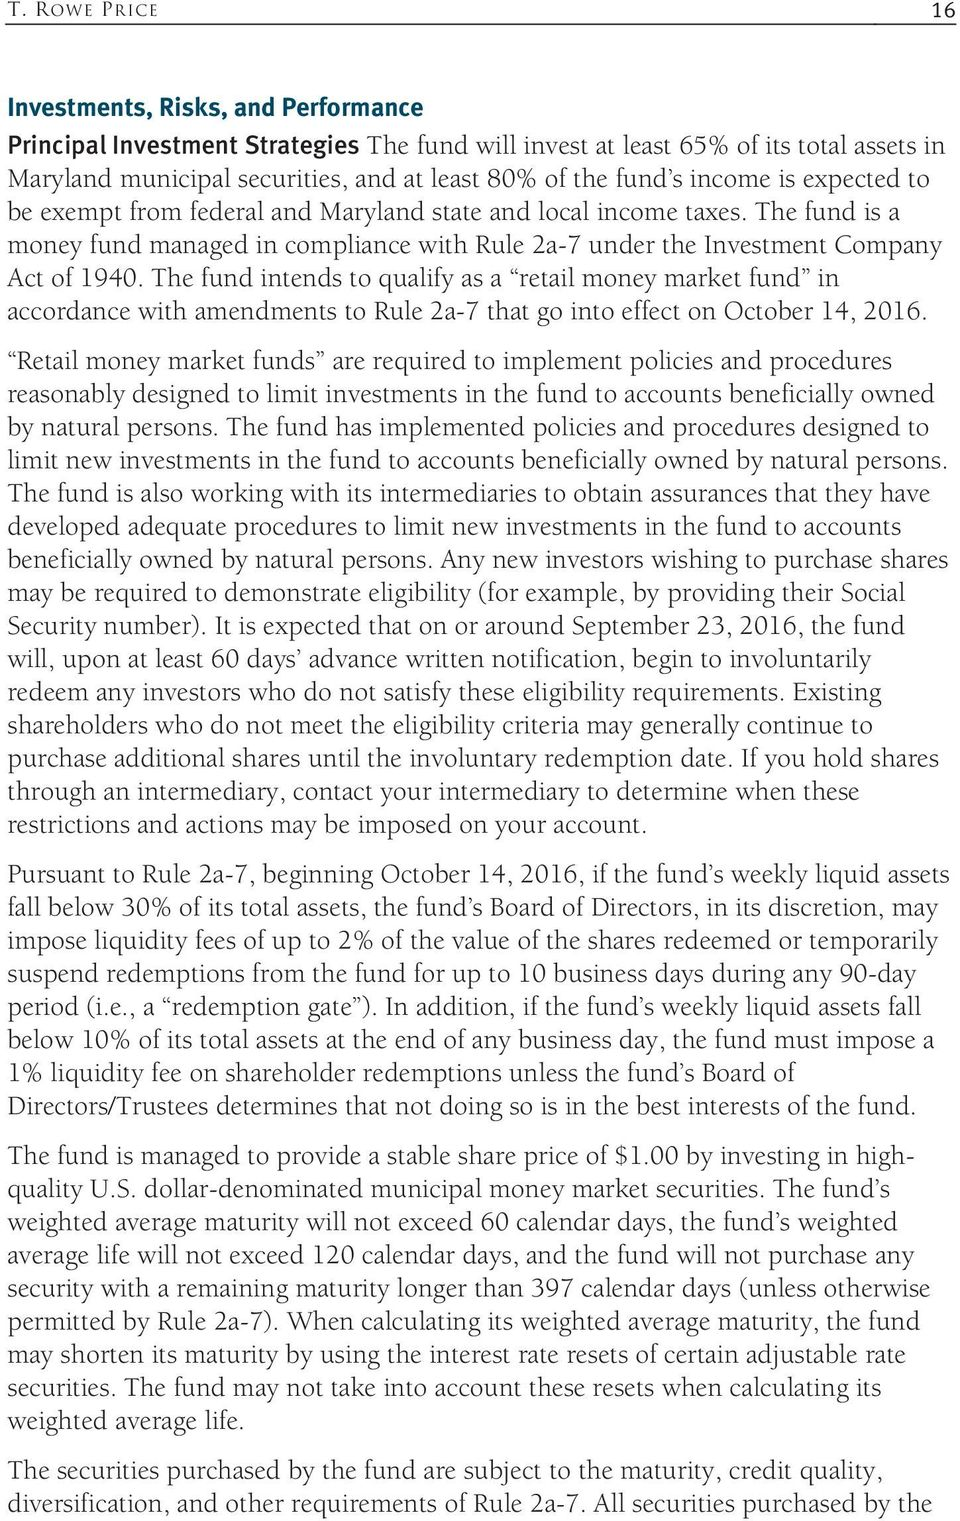 The fund intends to qualify as a retail money market fund in accordance with amendments to Rule 2a-7 that go into effect on October 14, 2016.